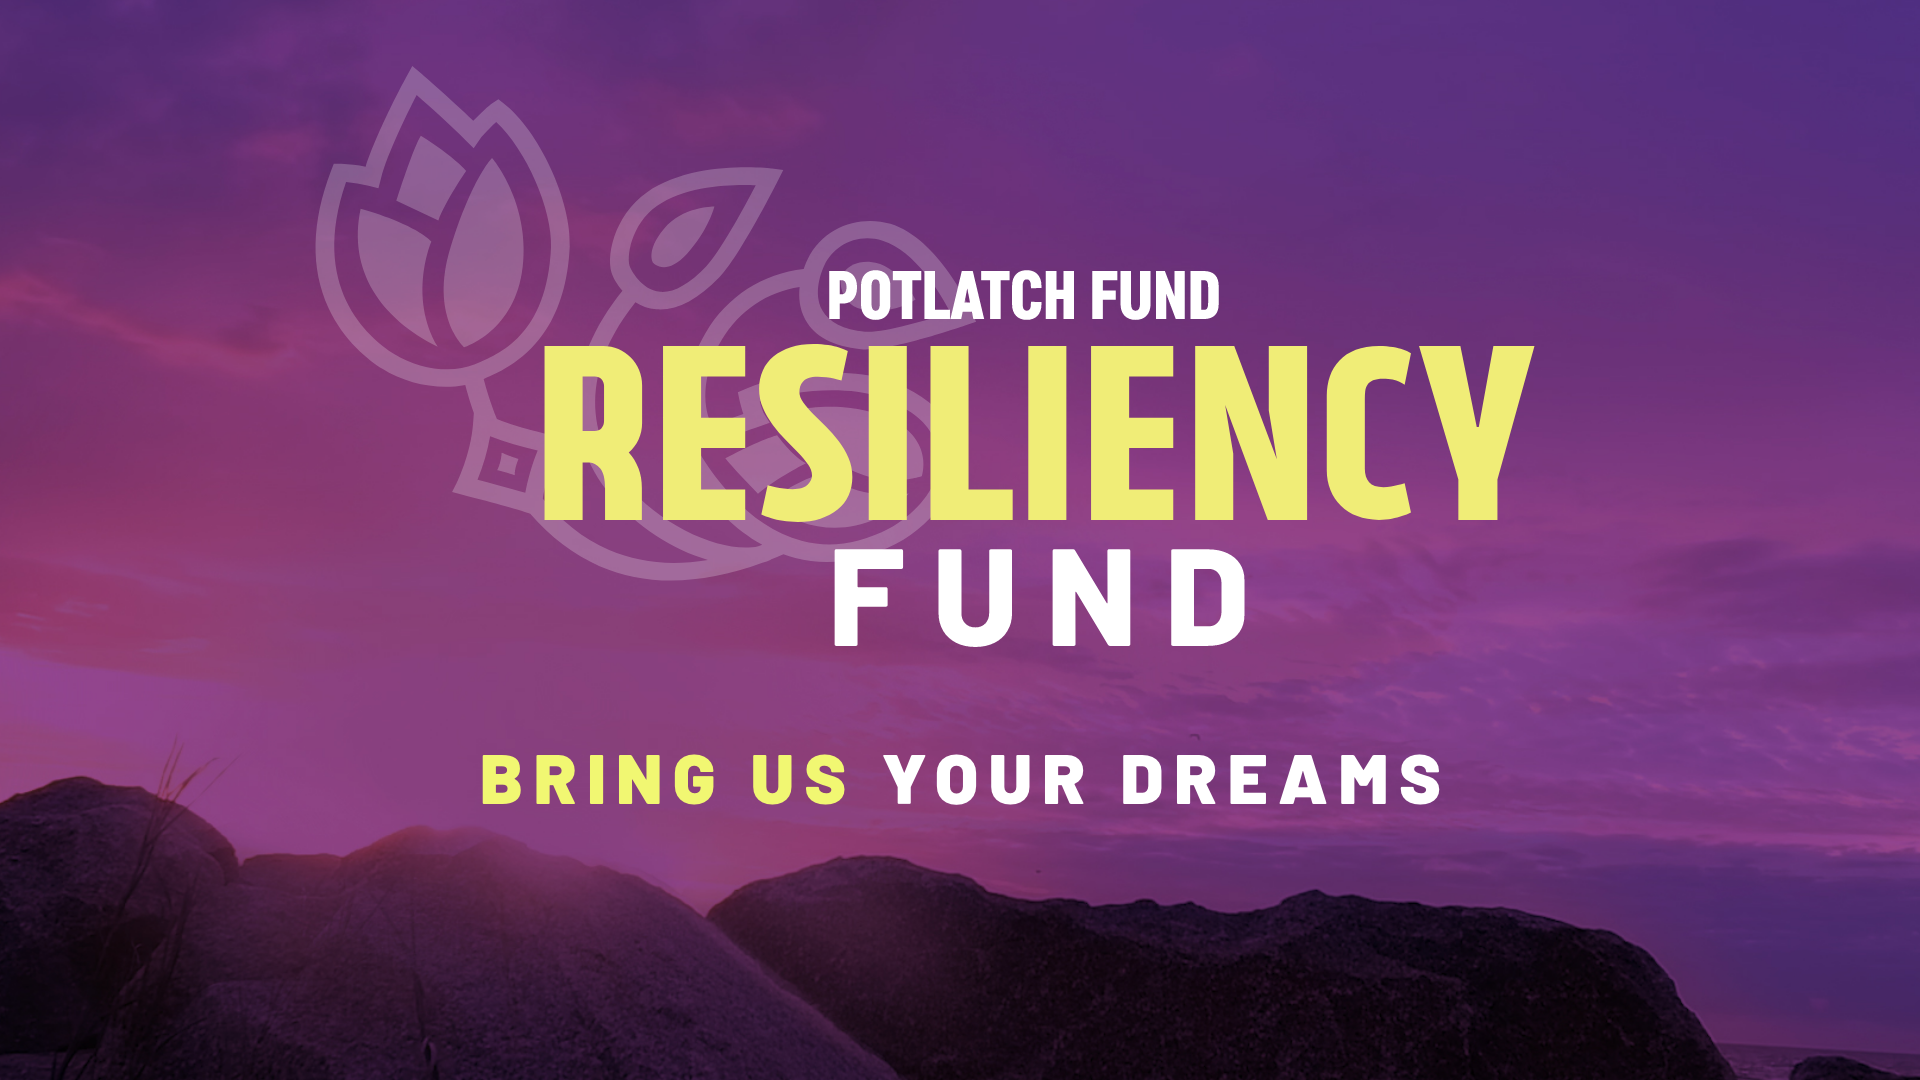 """Potlach Fund Resiliency Fund """"Bring Us Your Dreams"""""""